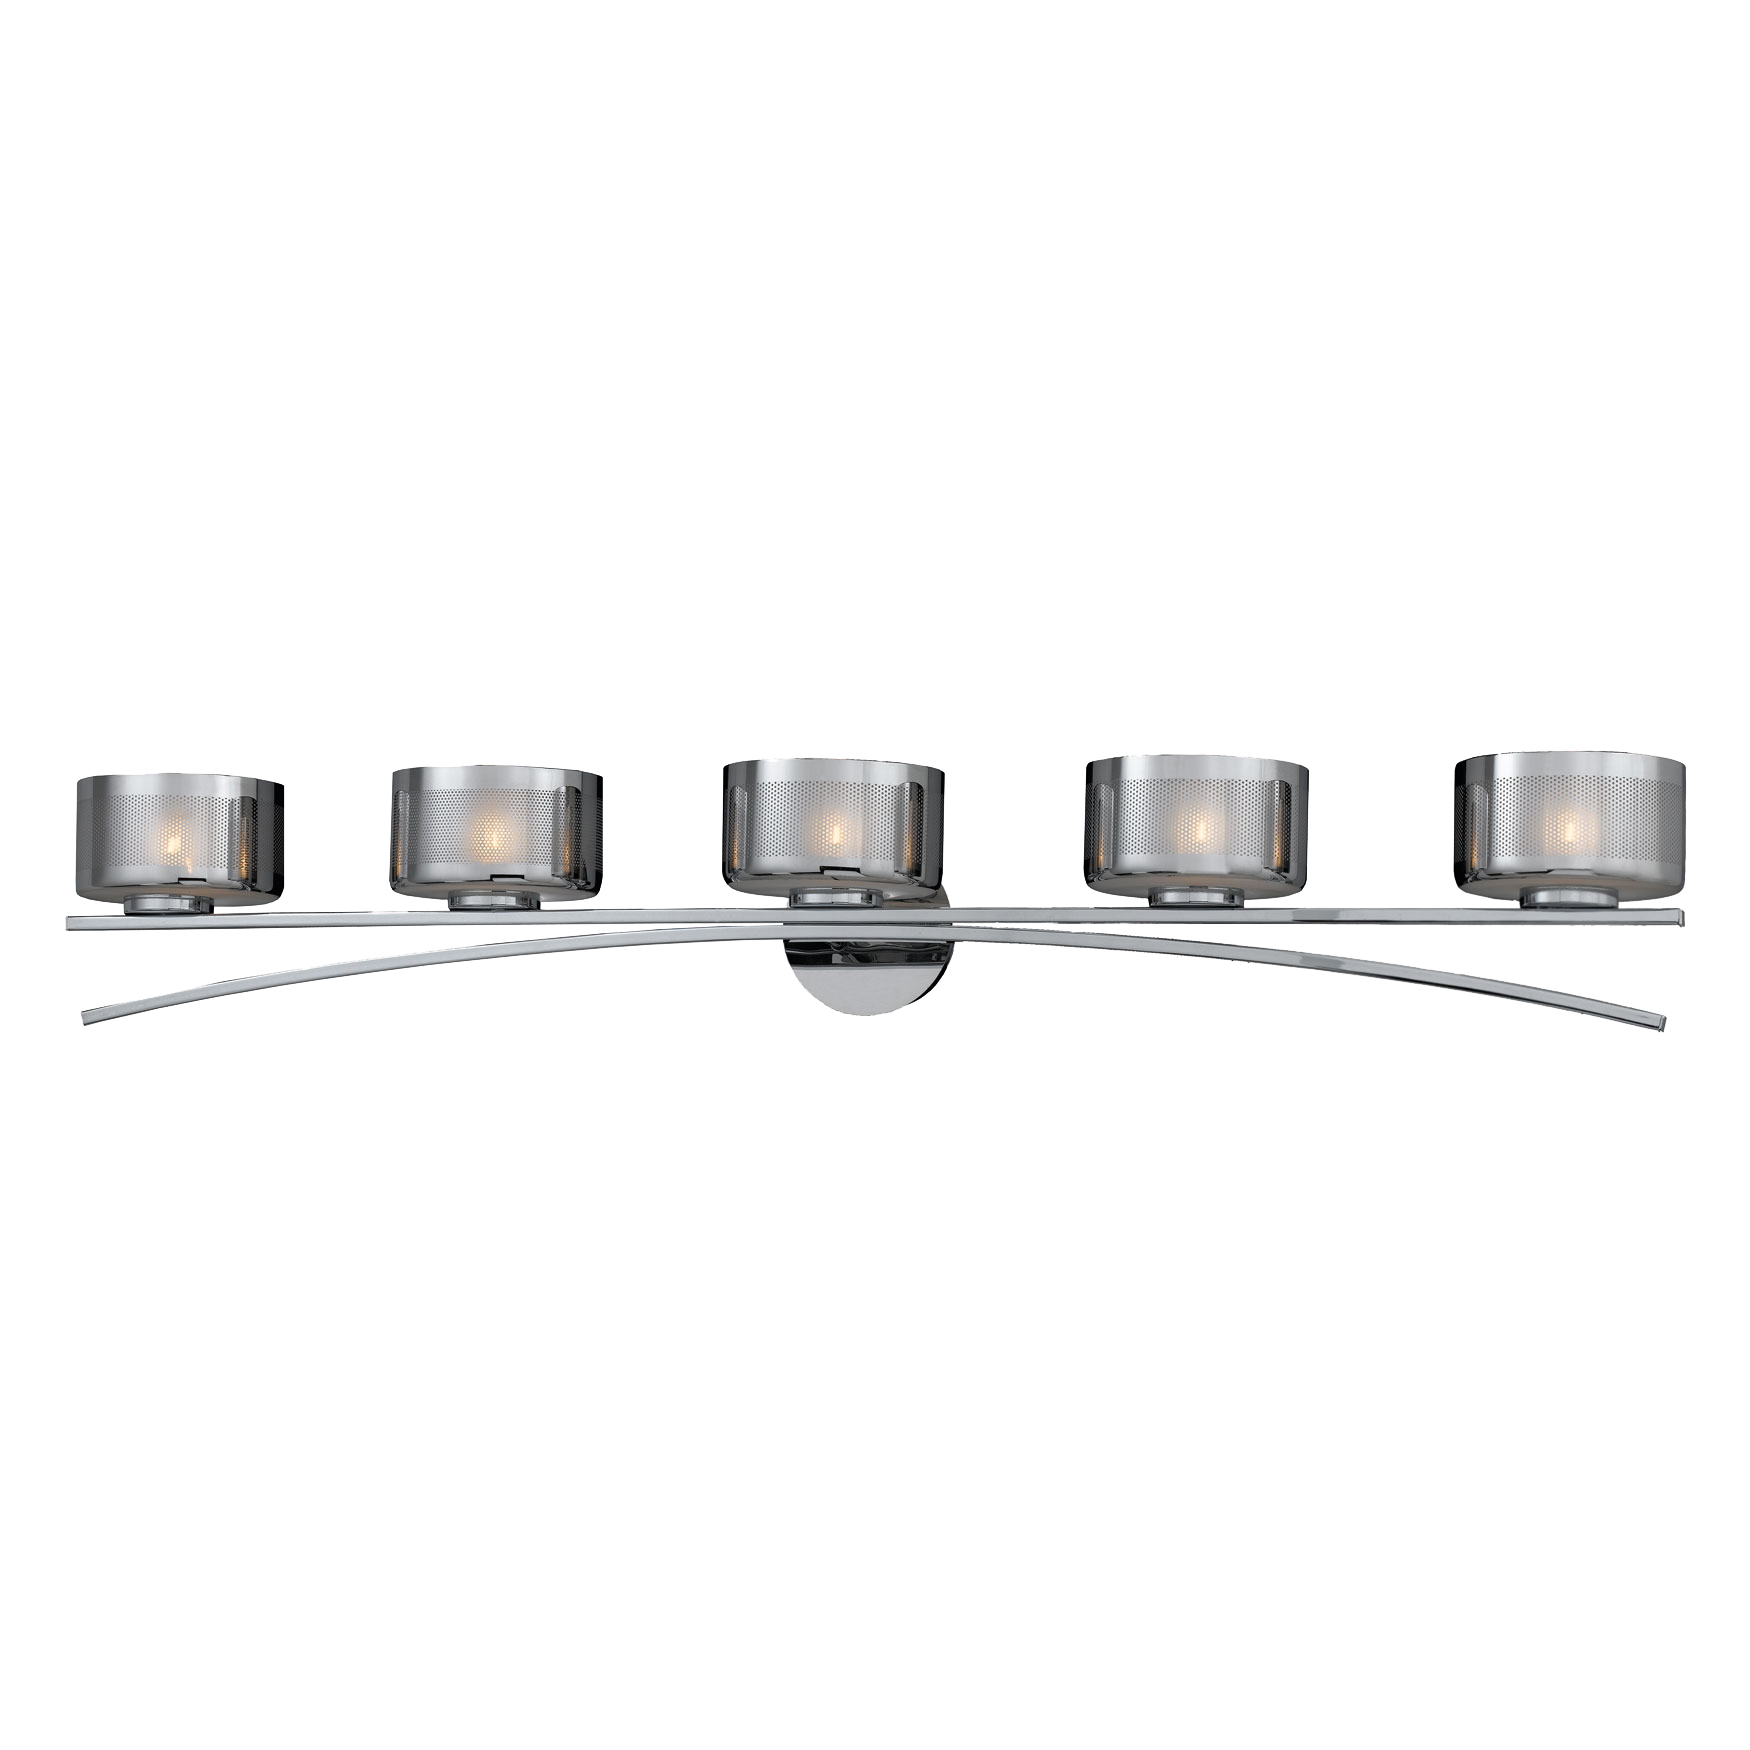 Lumenno Int Bodorlo Collection 5 Light Xenon Bath Vanity In A Chrome Finish Chrome Plated Finish ...